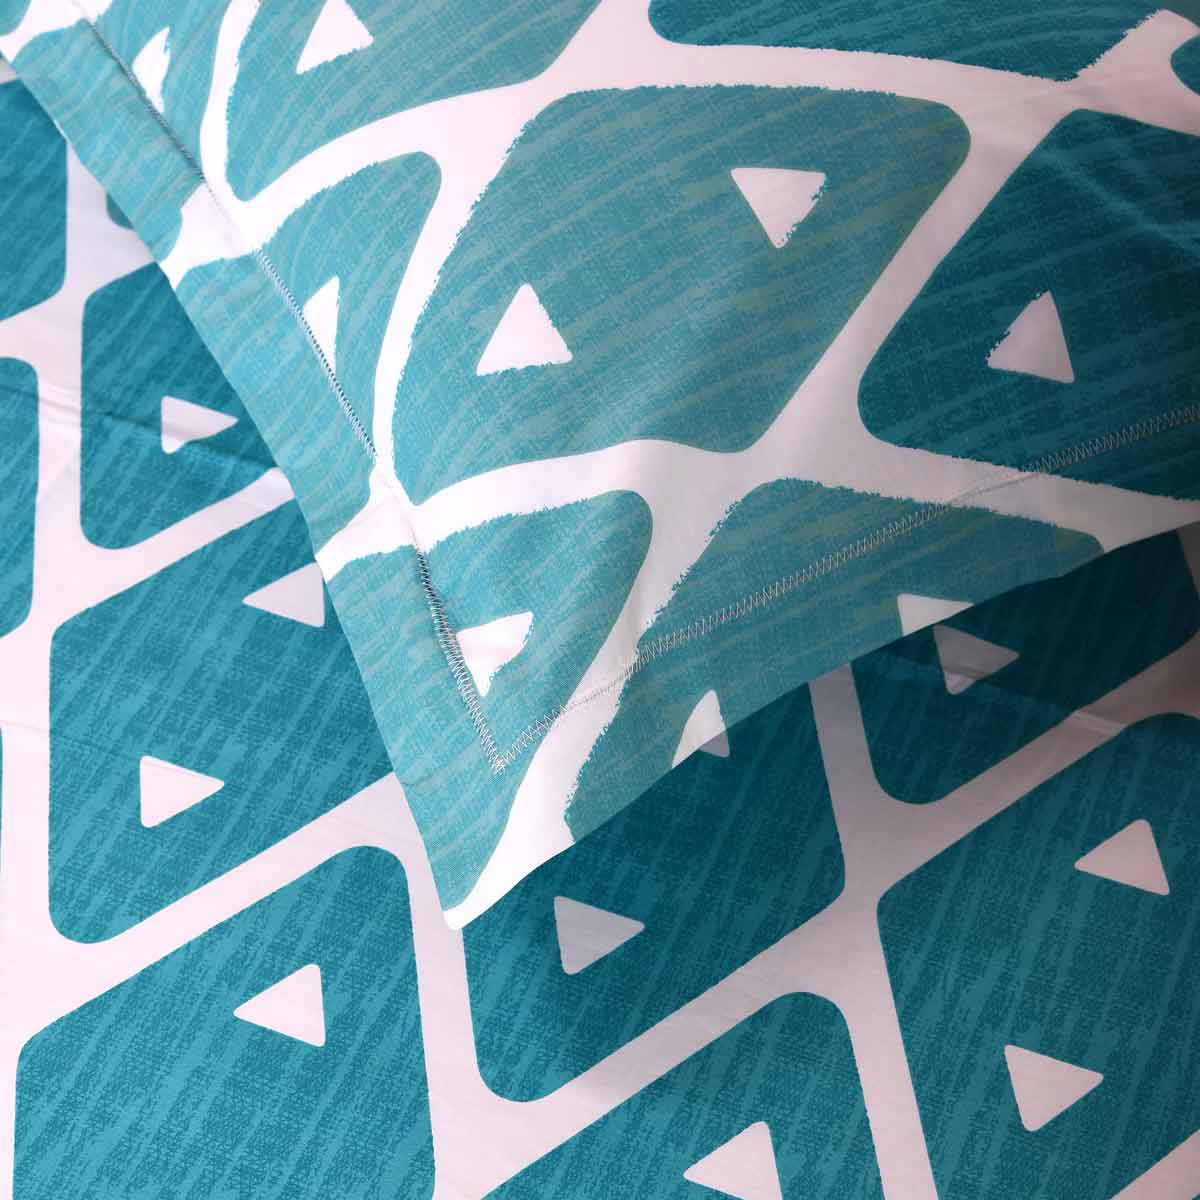 Blue Geometrical cotton bed sheet king size 108x108 inches - white